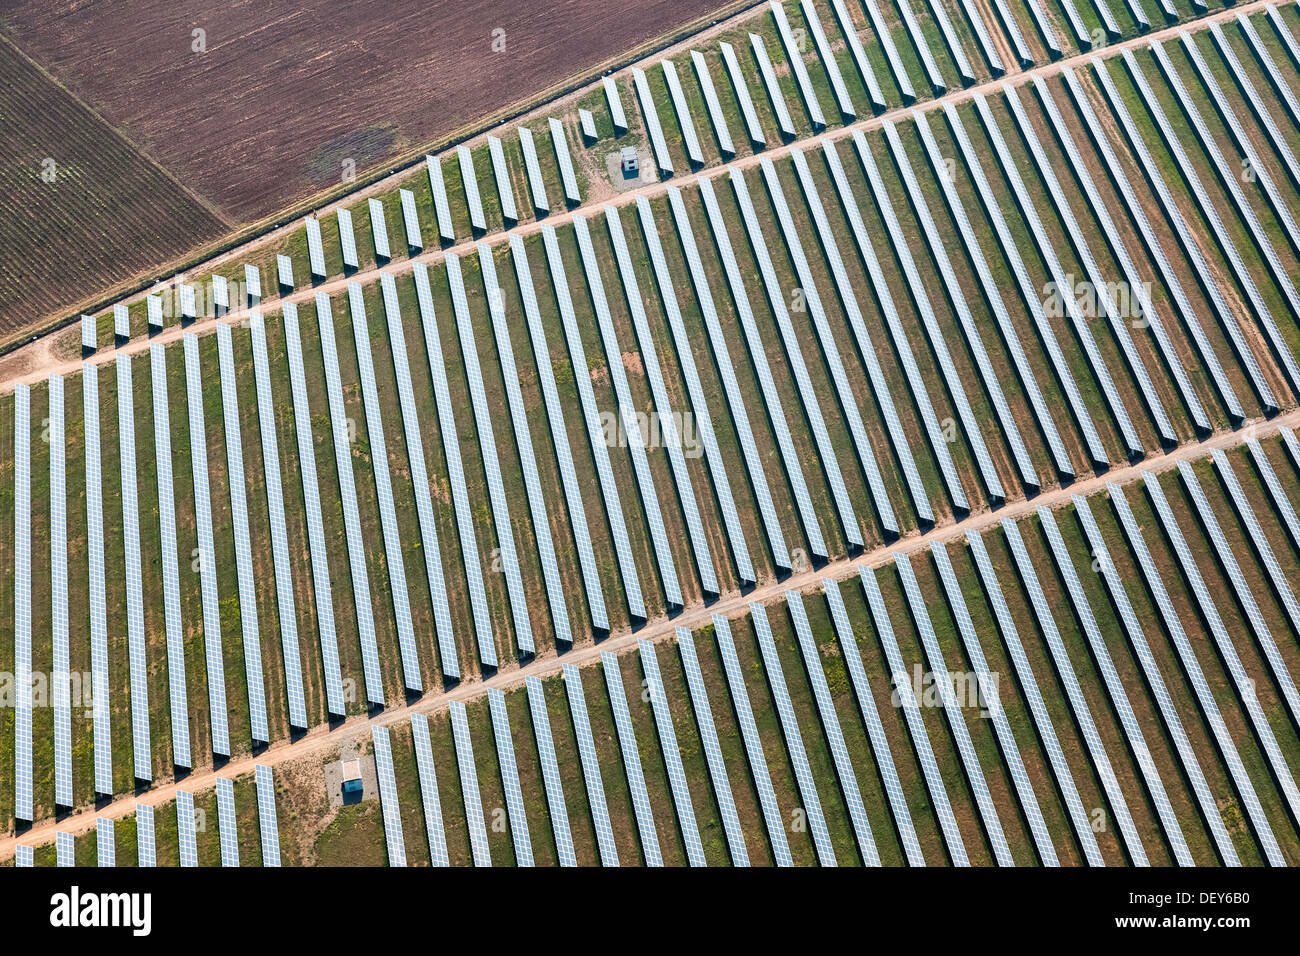 Field of solar panels from above - Stock Image